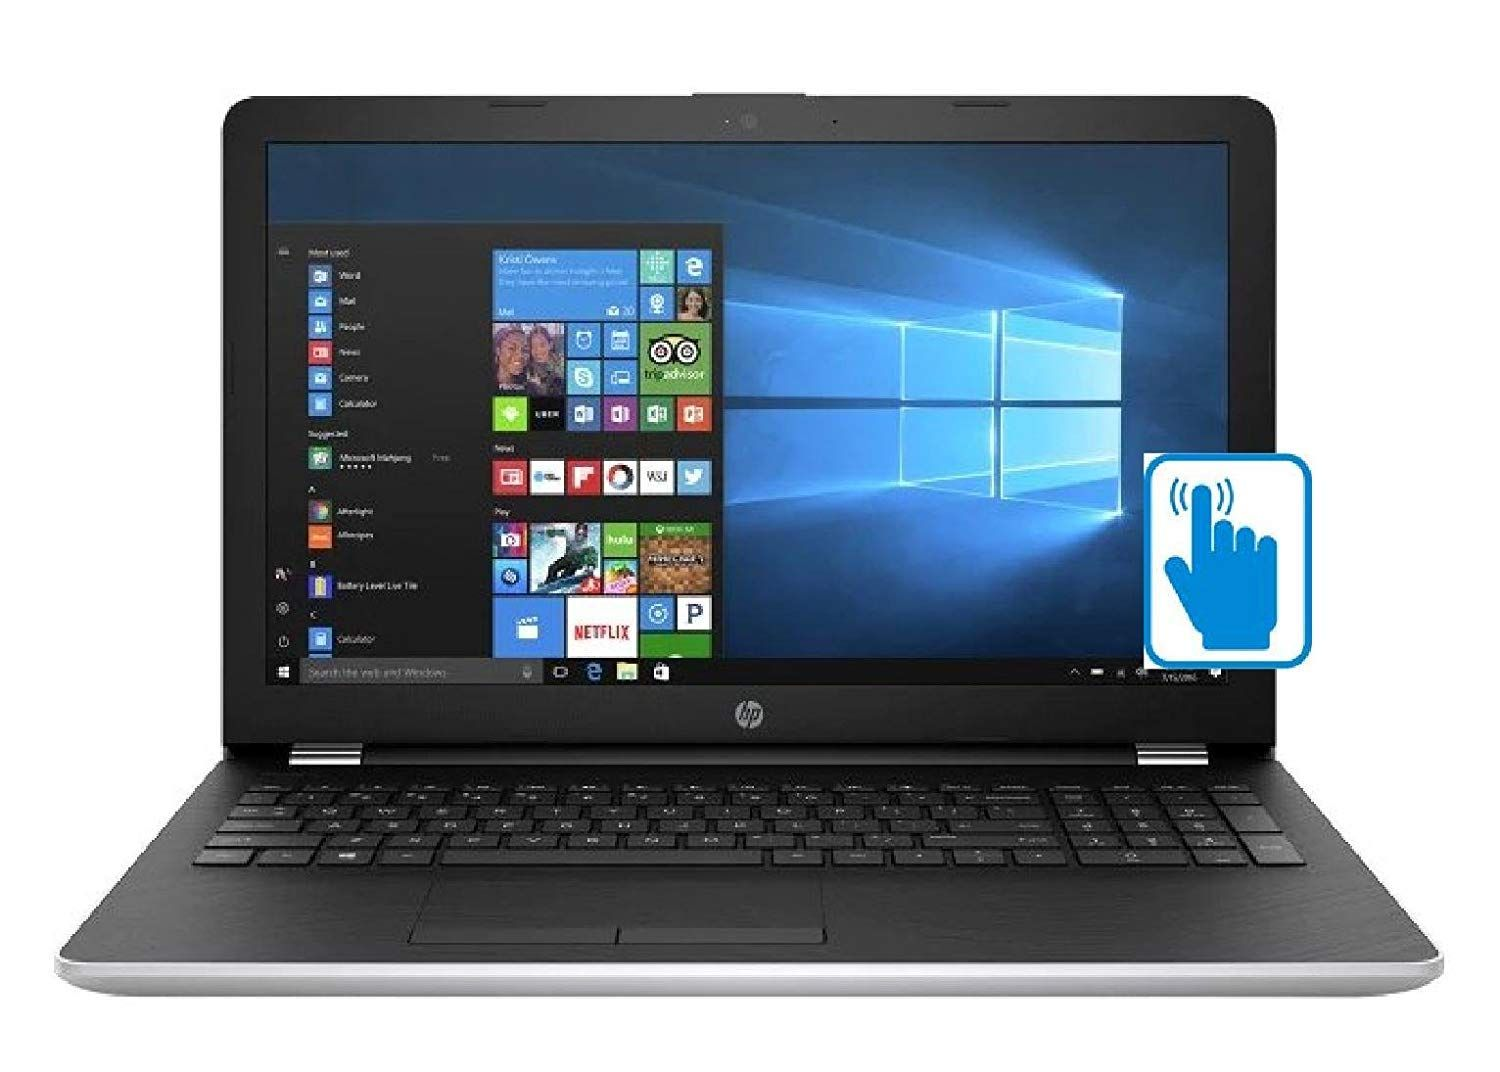 Intel Core I5 7200u 2 50 Ghz Up To 3 10 Ghz With Turbo Boost Technology 8gb Ddr4 Sdram 2tb 5400 Rpm Sata 15 6 In Diag Pc Laptop Intel Core Laptop Screen Repair